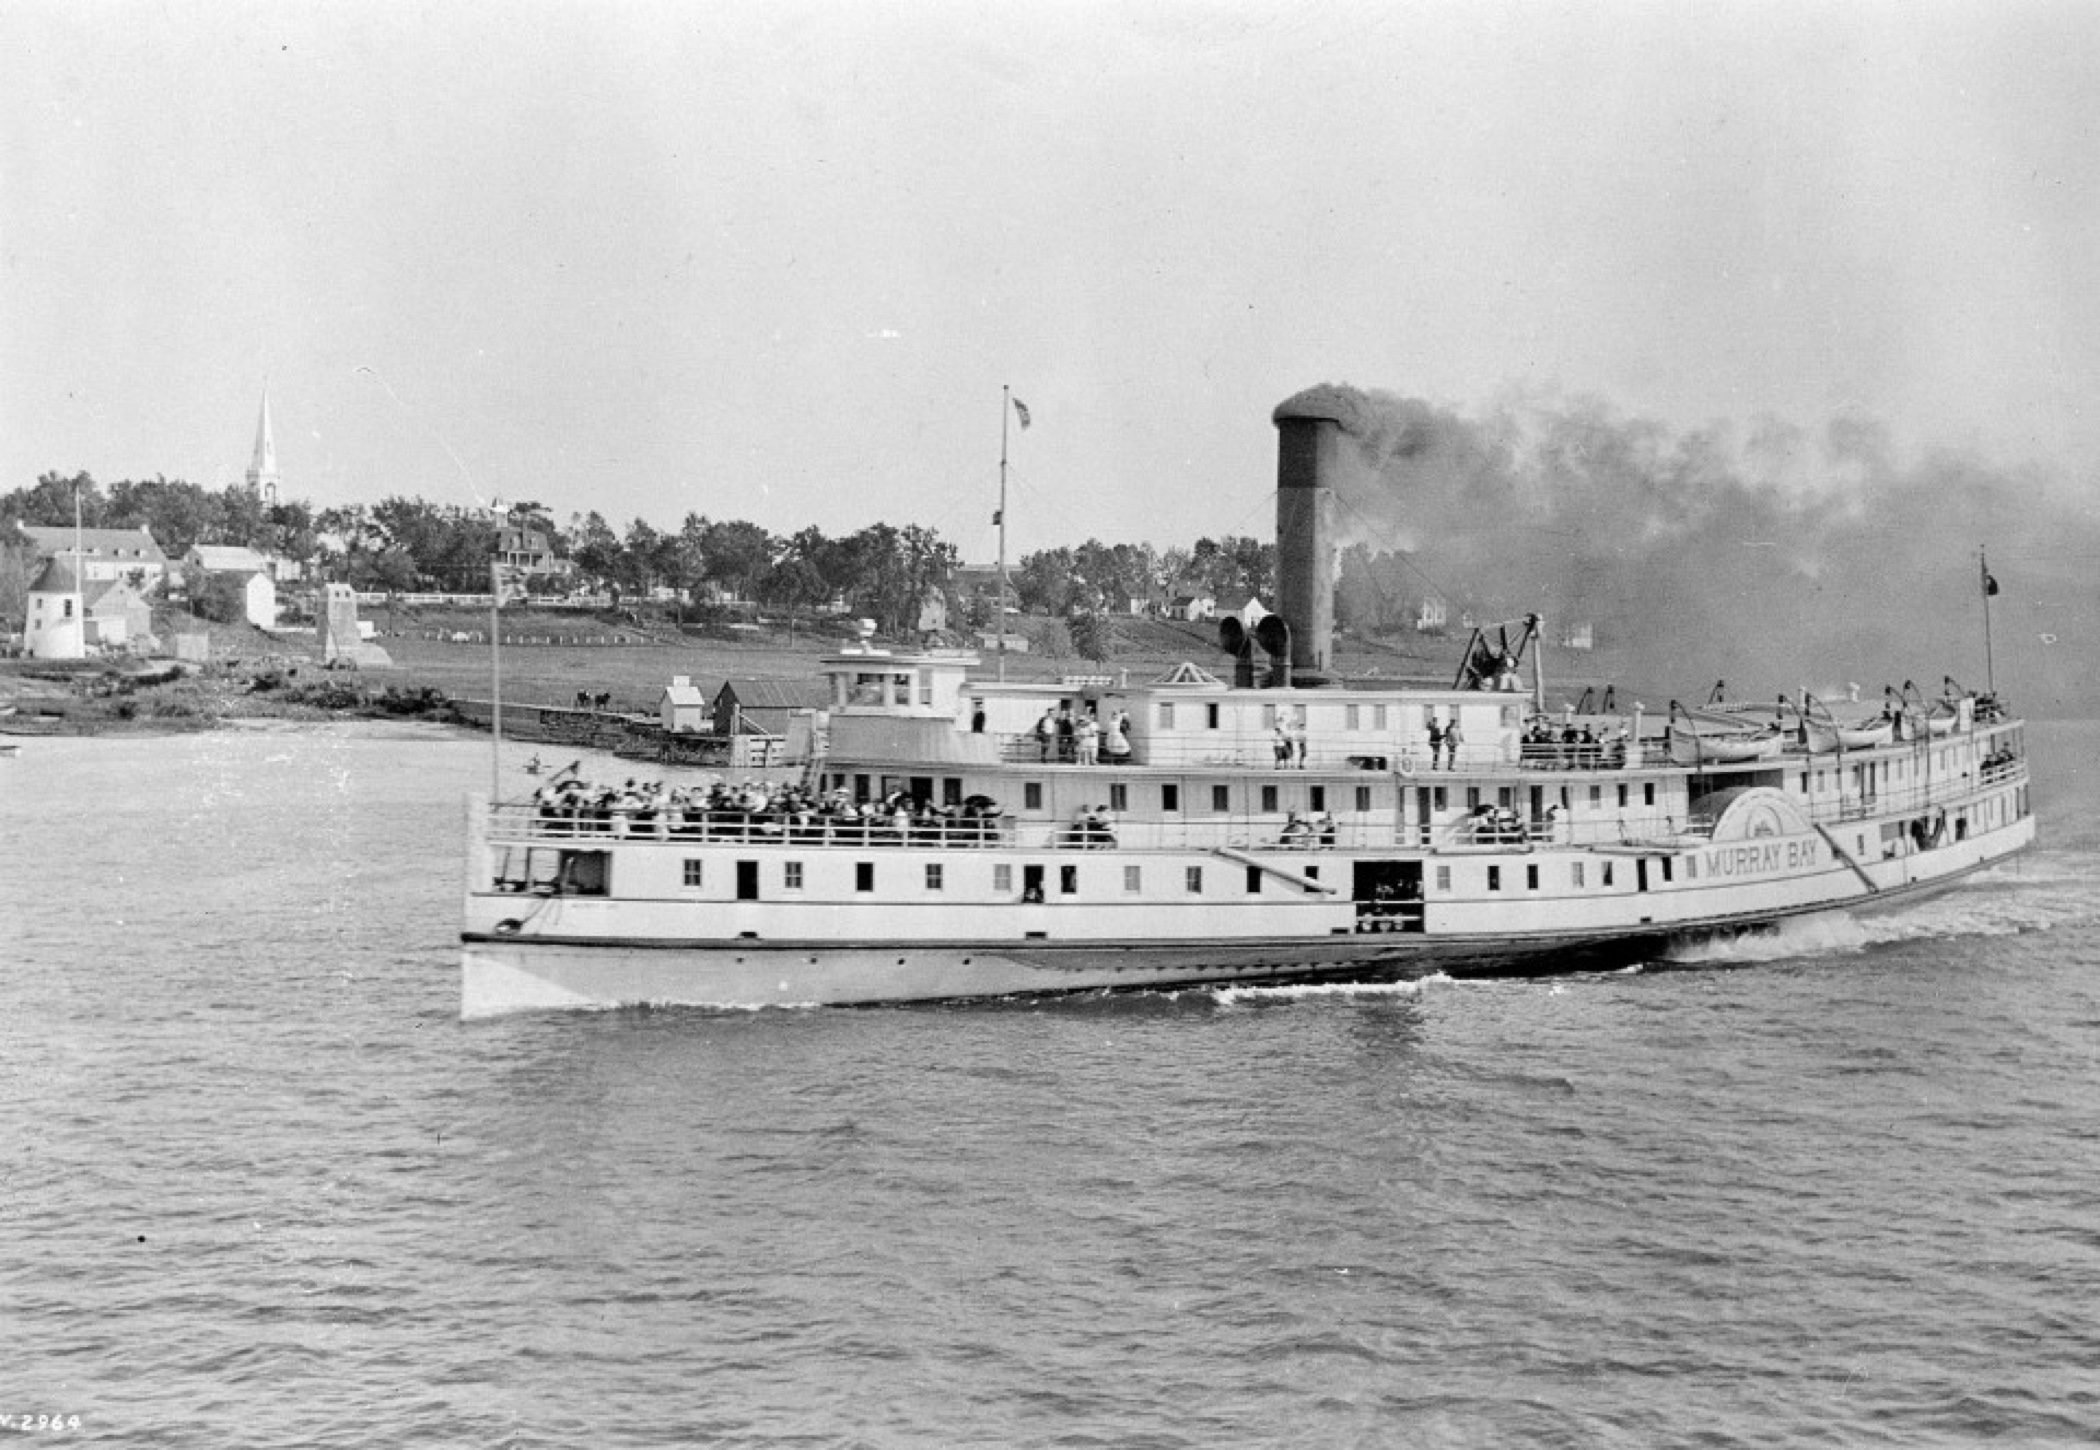 Black and white image of a medium-sized steamship ferry, in transit on a large river, with black smoke coming out of the smoke stack and the front deck crowded with people.